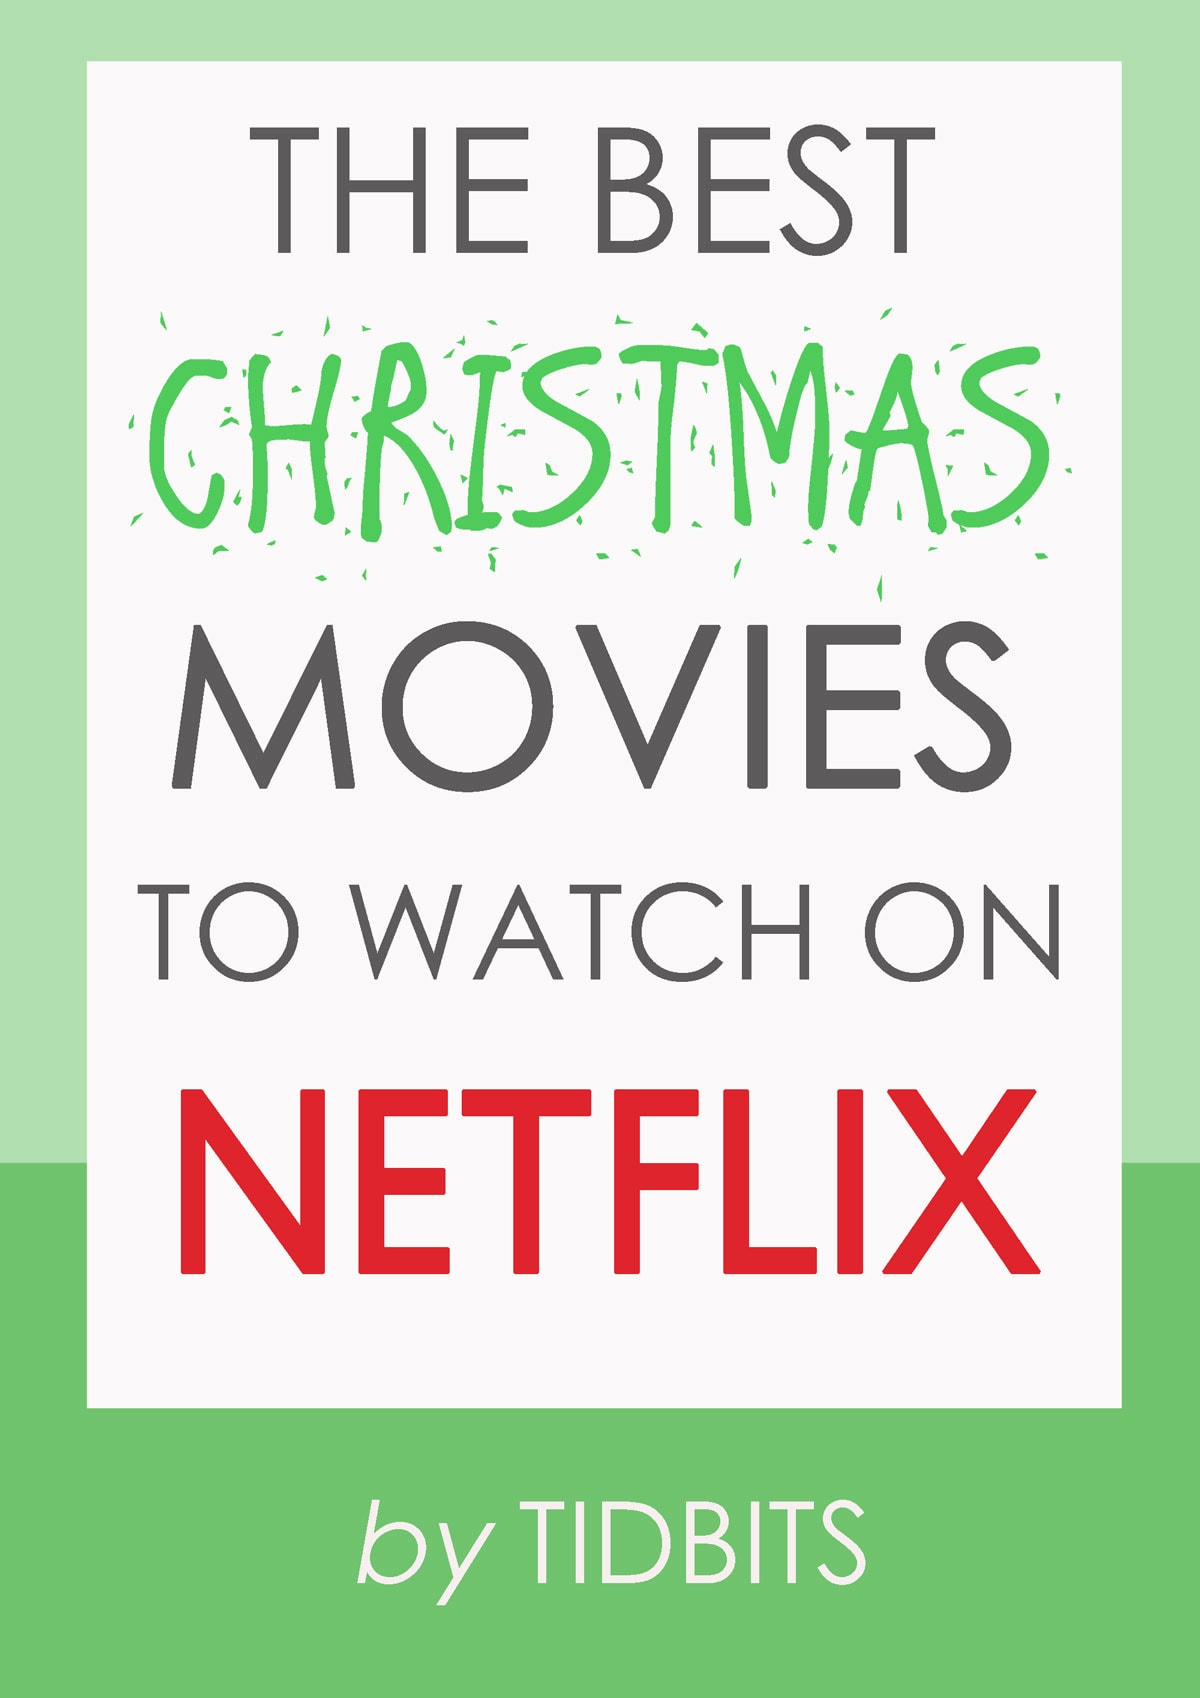 The Best Christmas Movies to Watch on Netflix - Tidbits